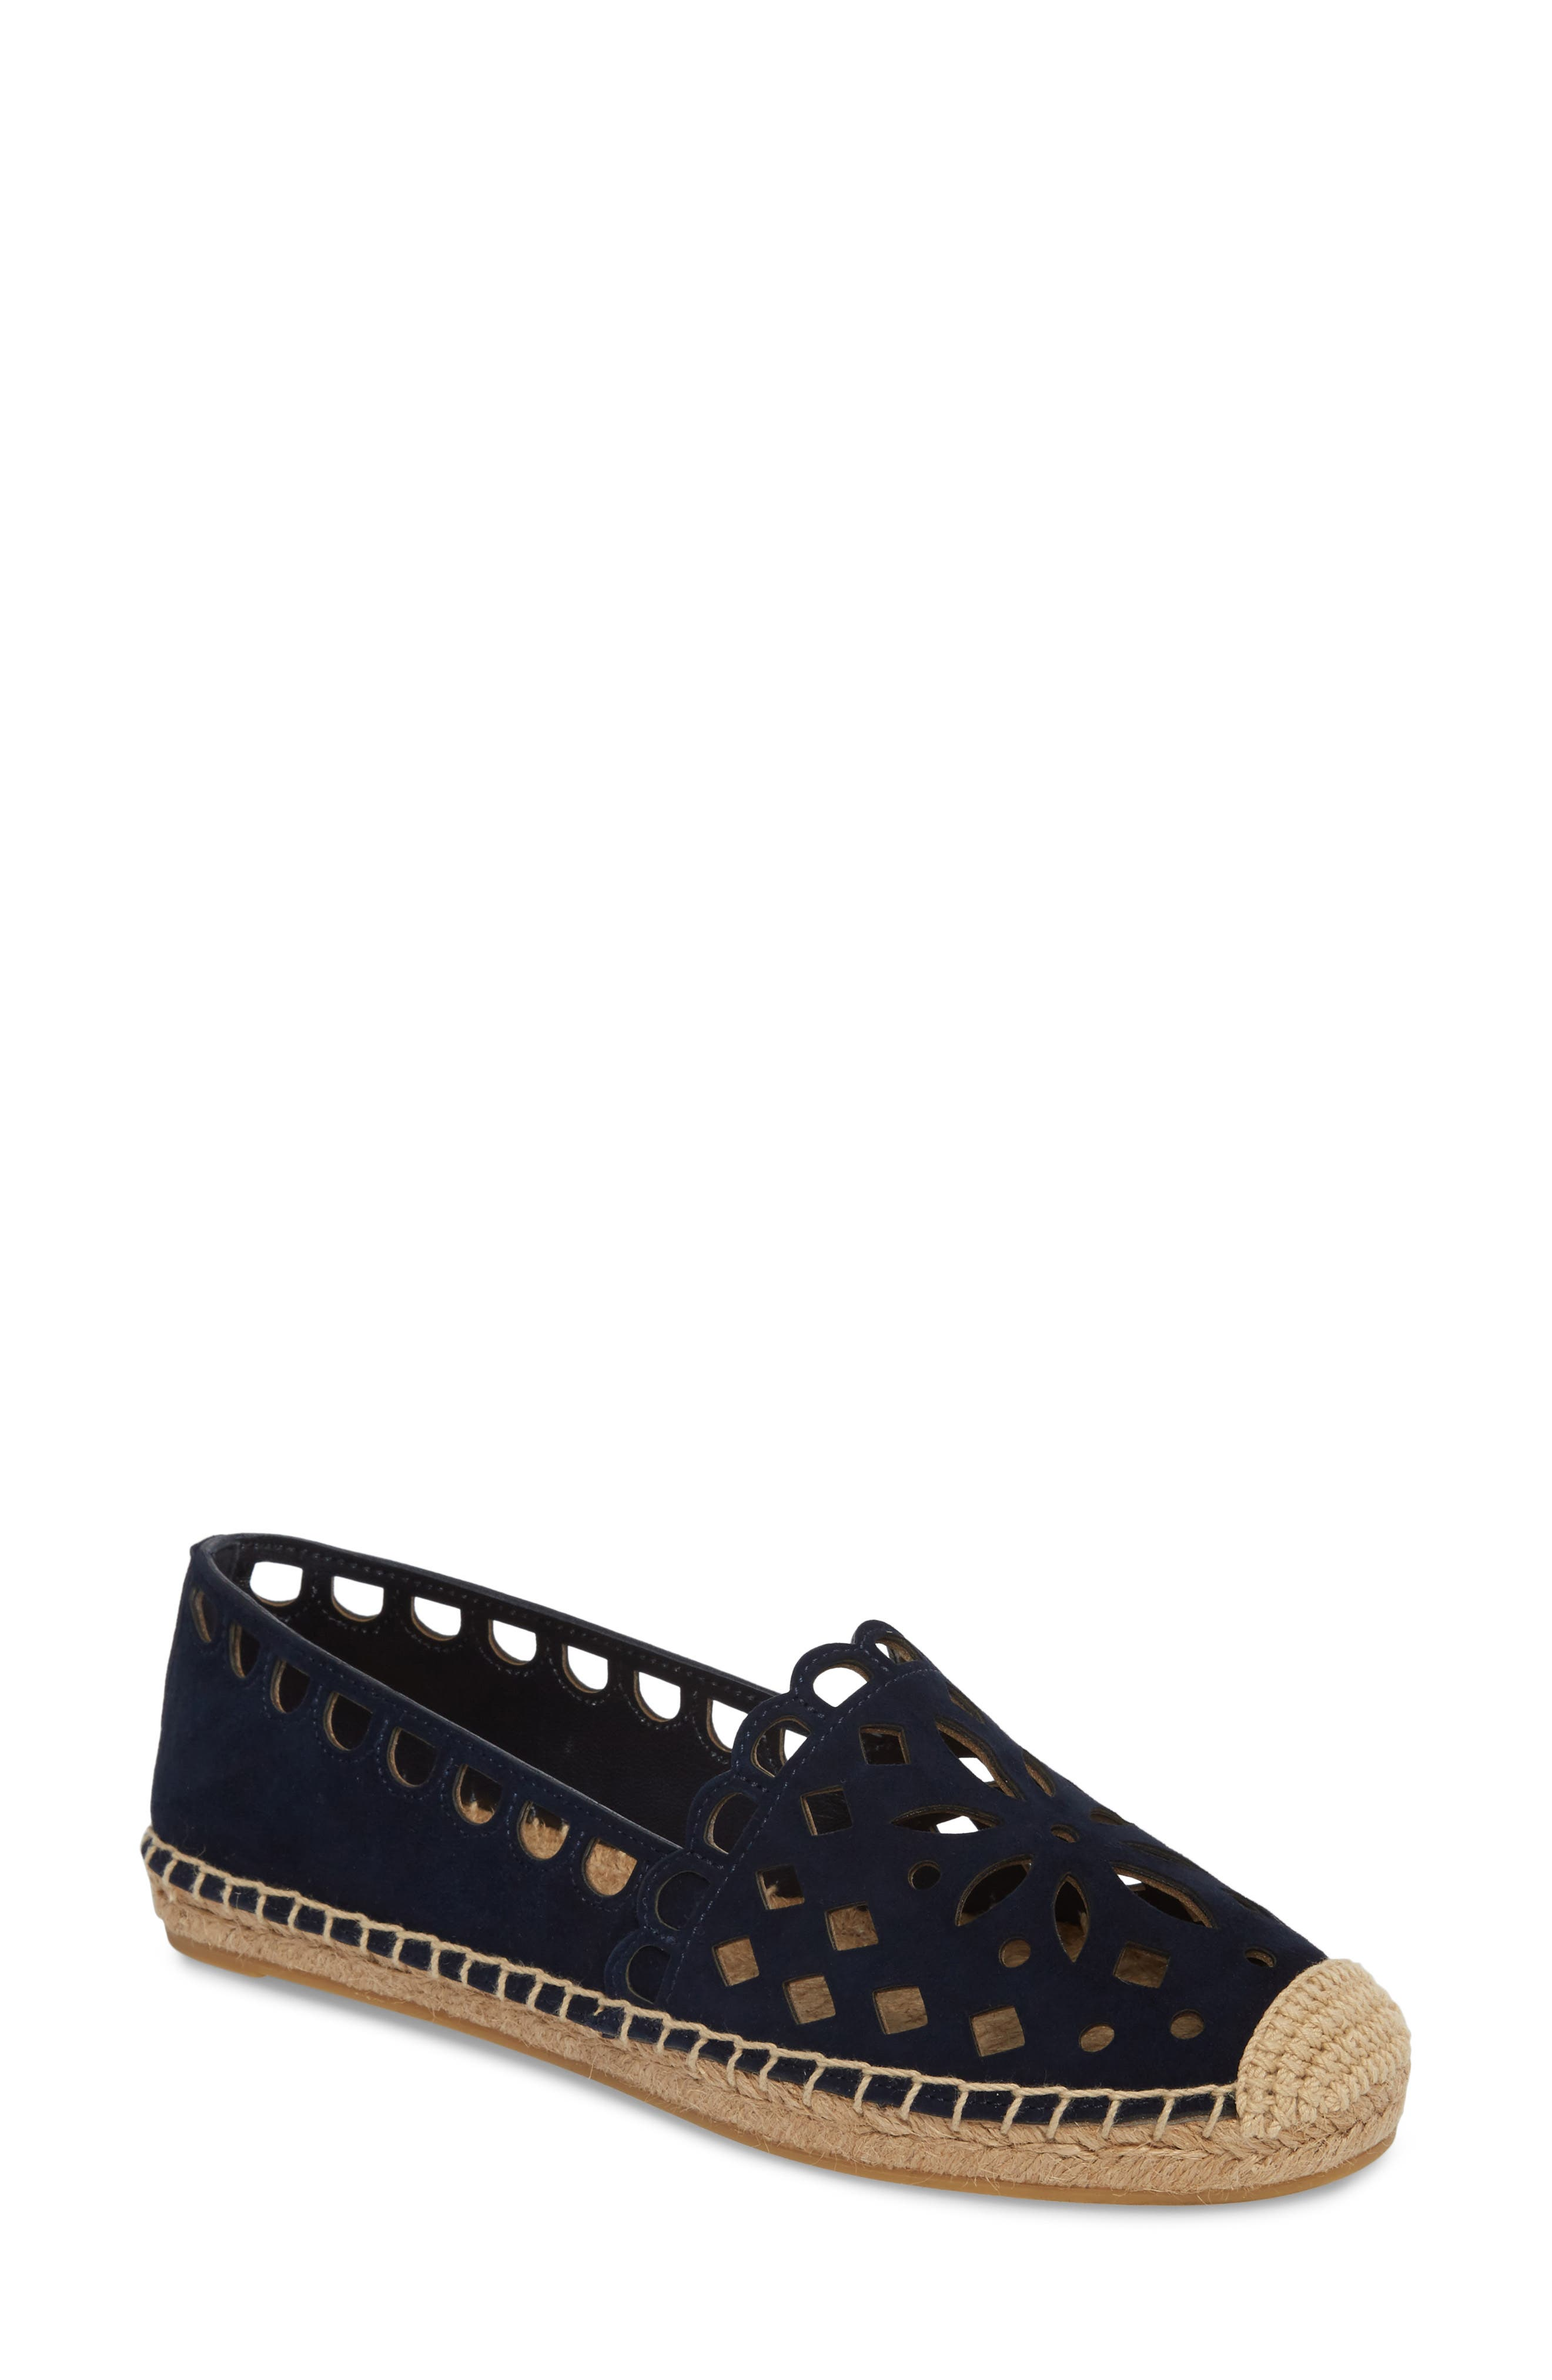 May Perforated Espadrille Flat,                             Main thumbnail 1, color,                             430